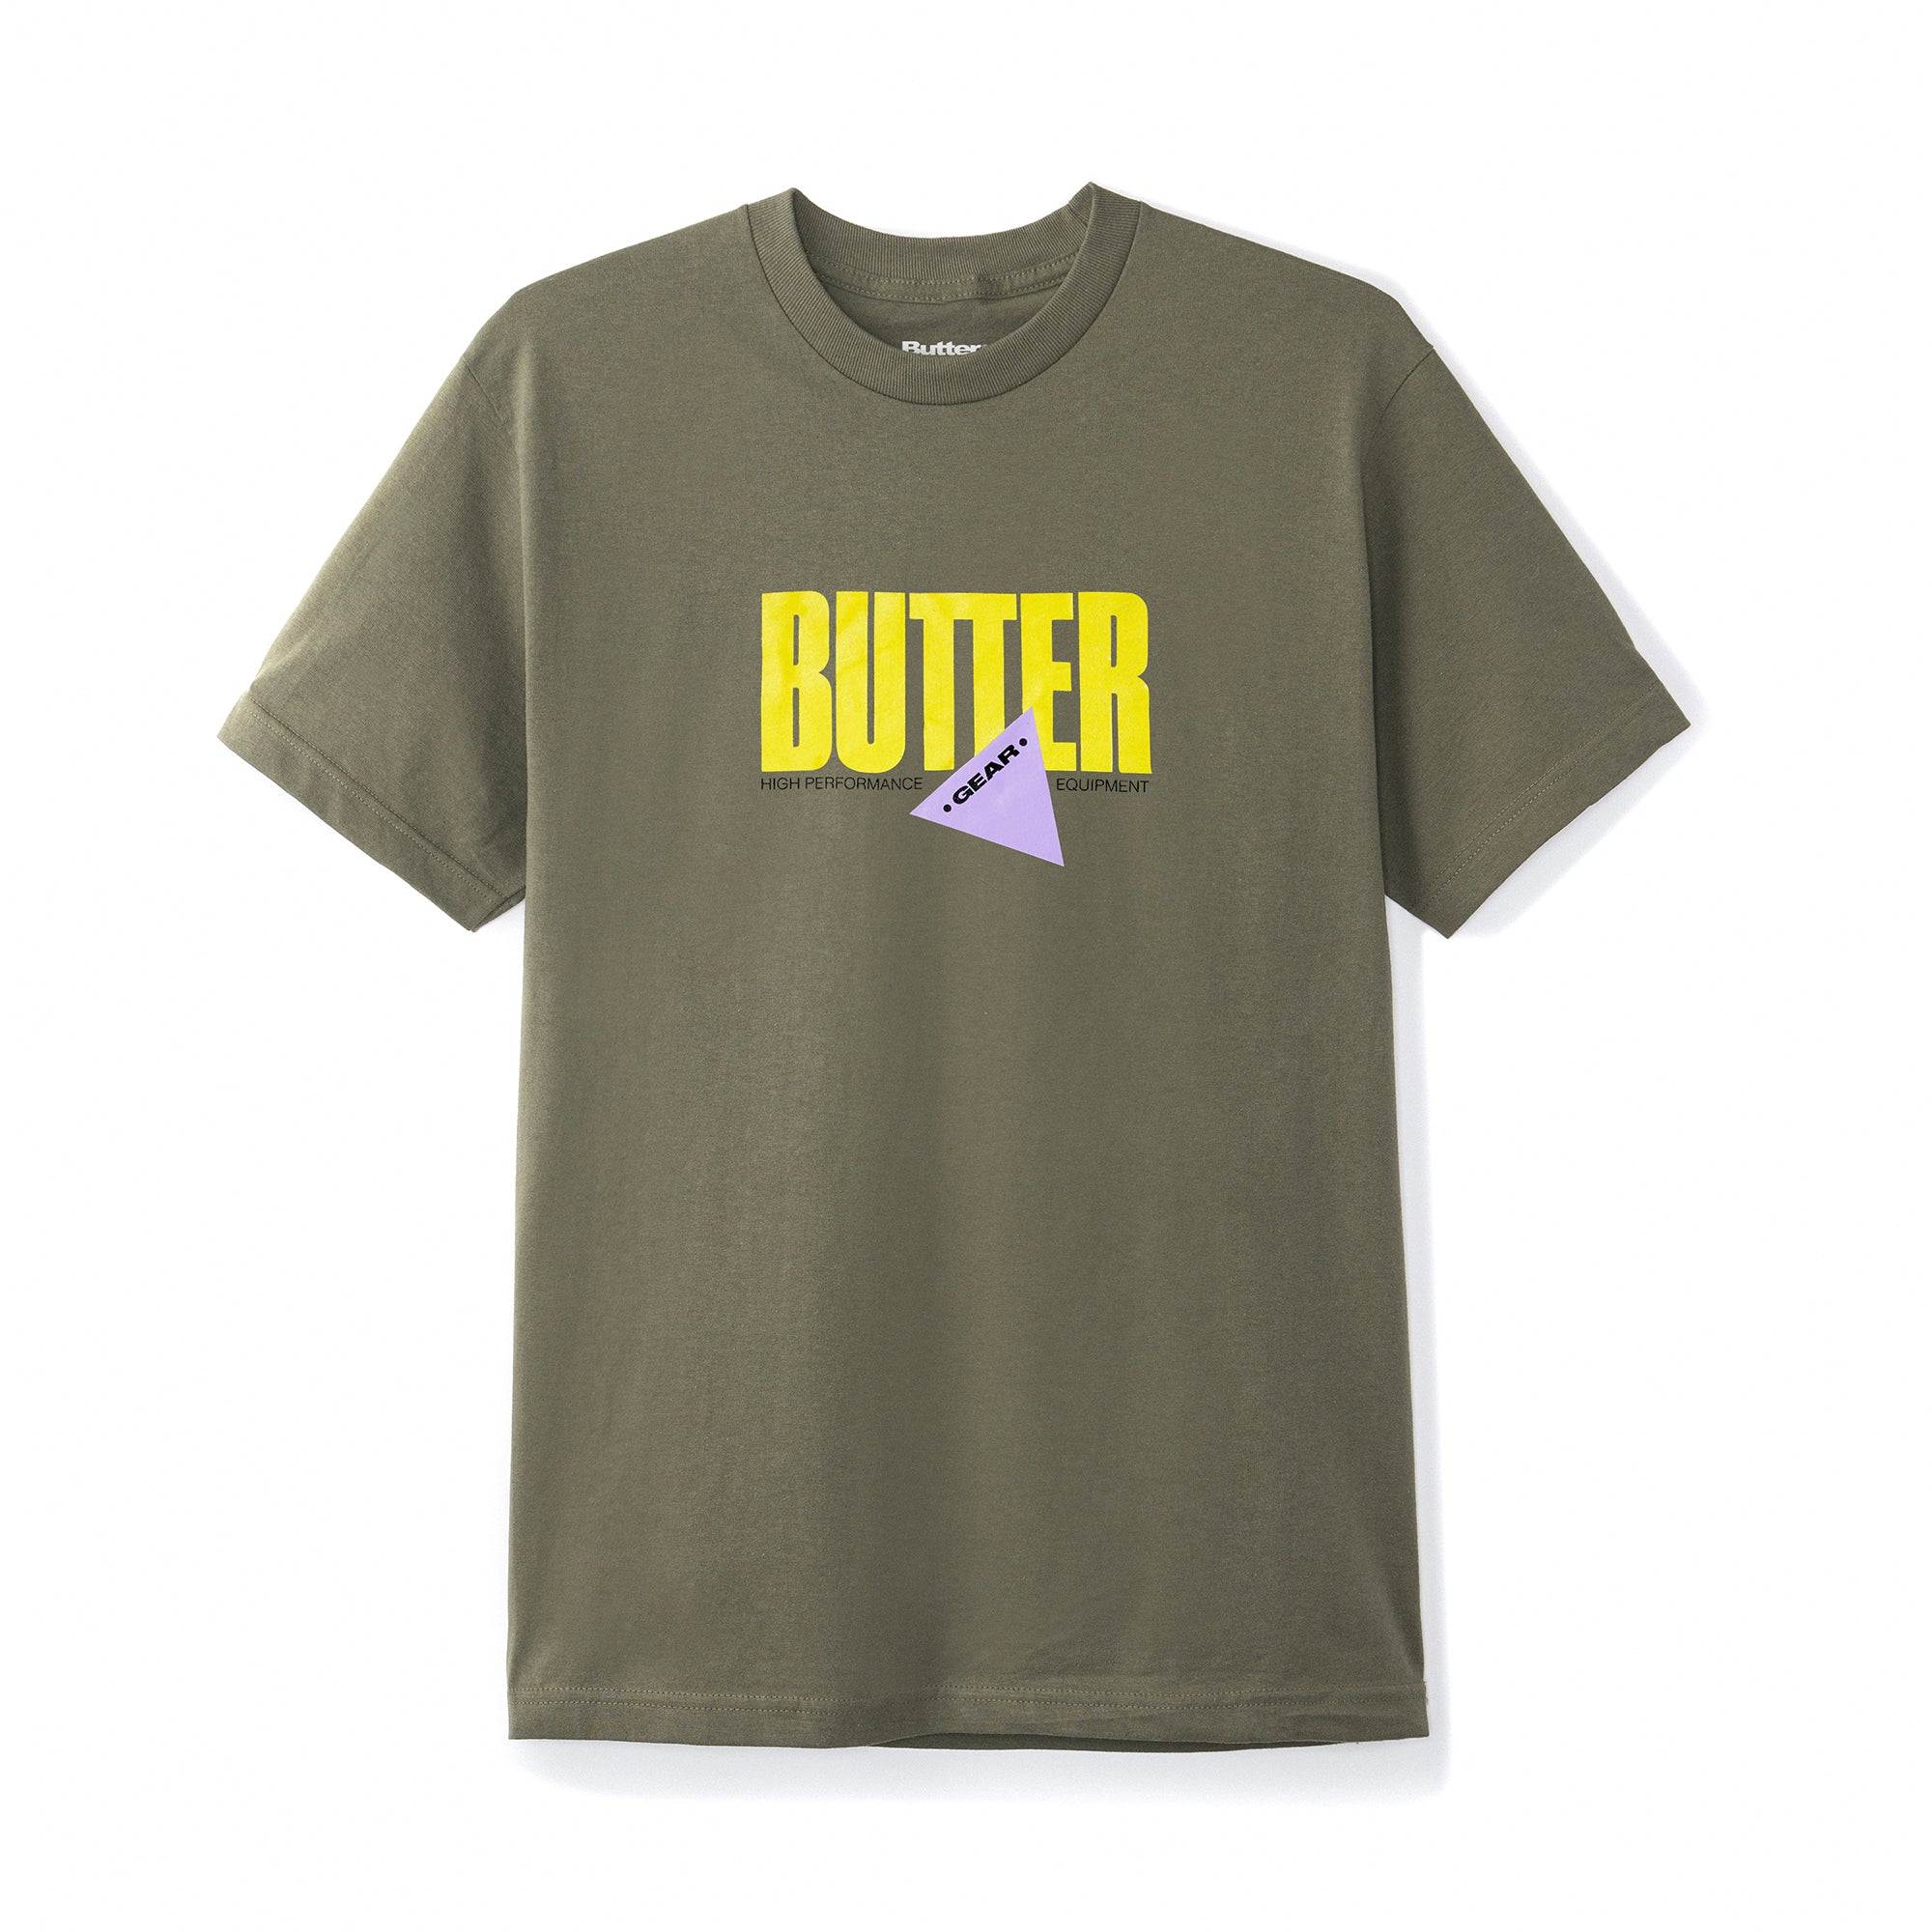 Butter Goods Gear Tee Product Photo #1